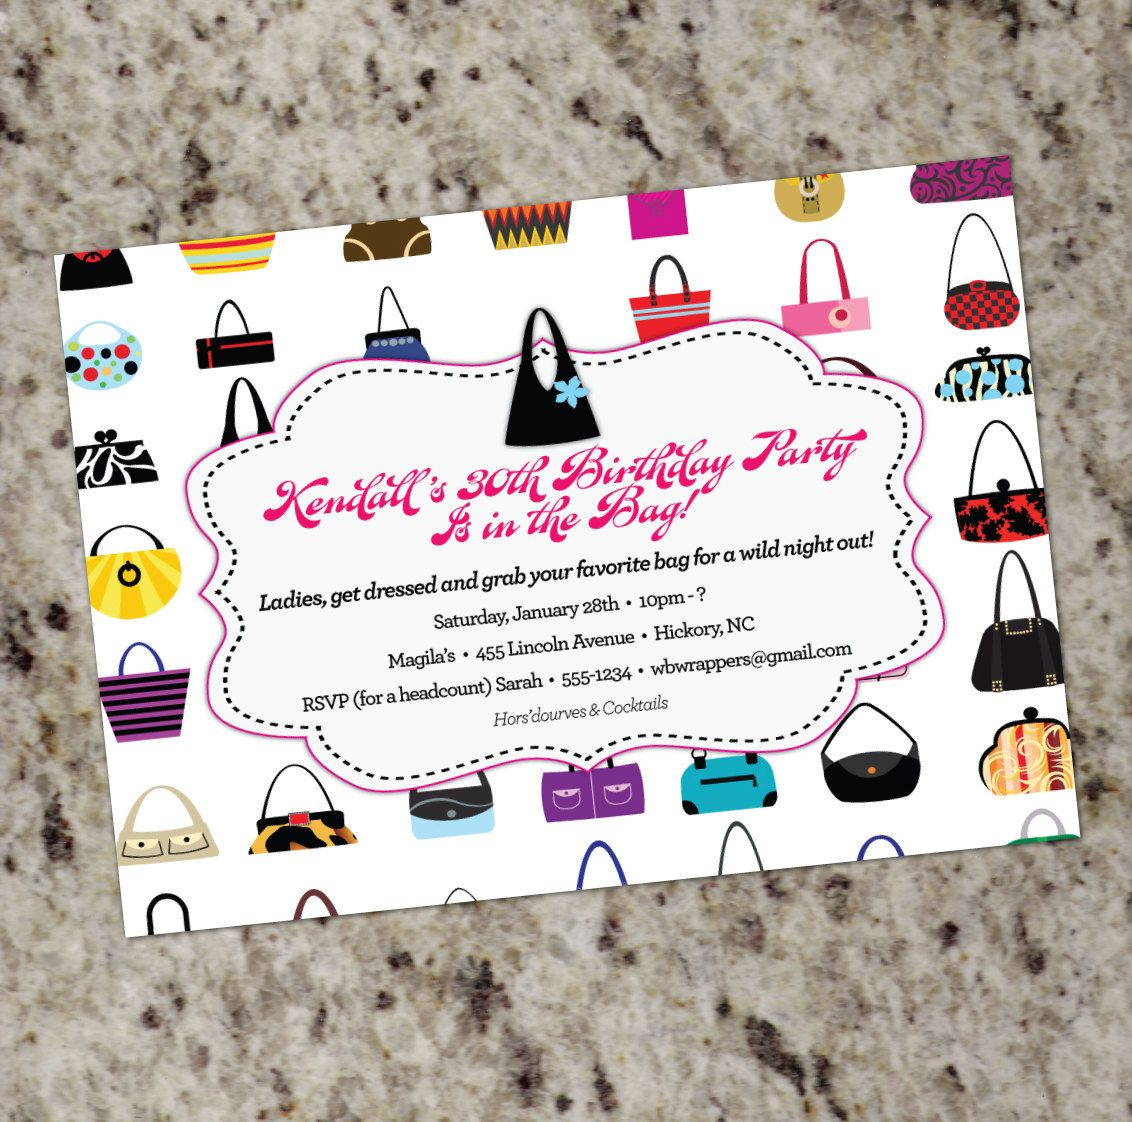 HANDBAGS GALORE Purse themed Invitations Any by Whirlibird | Old ...